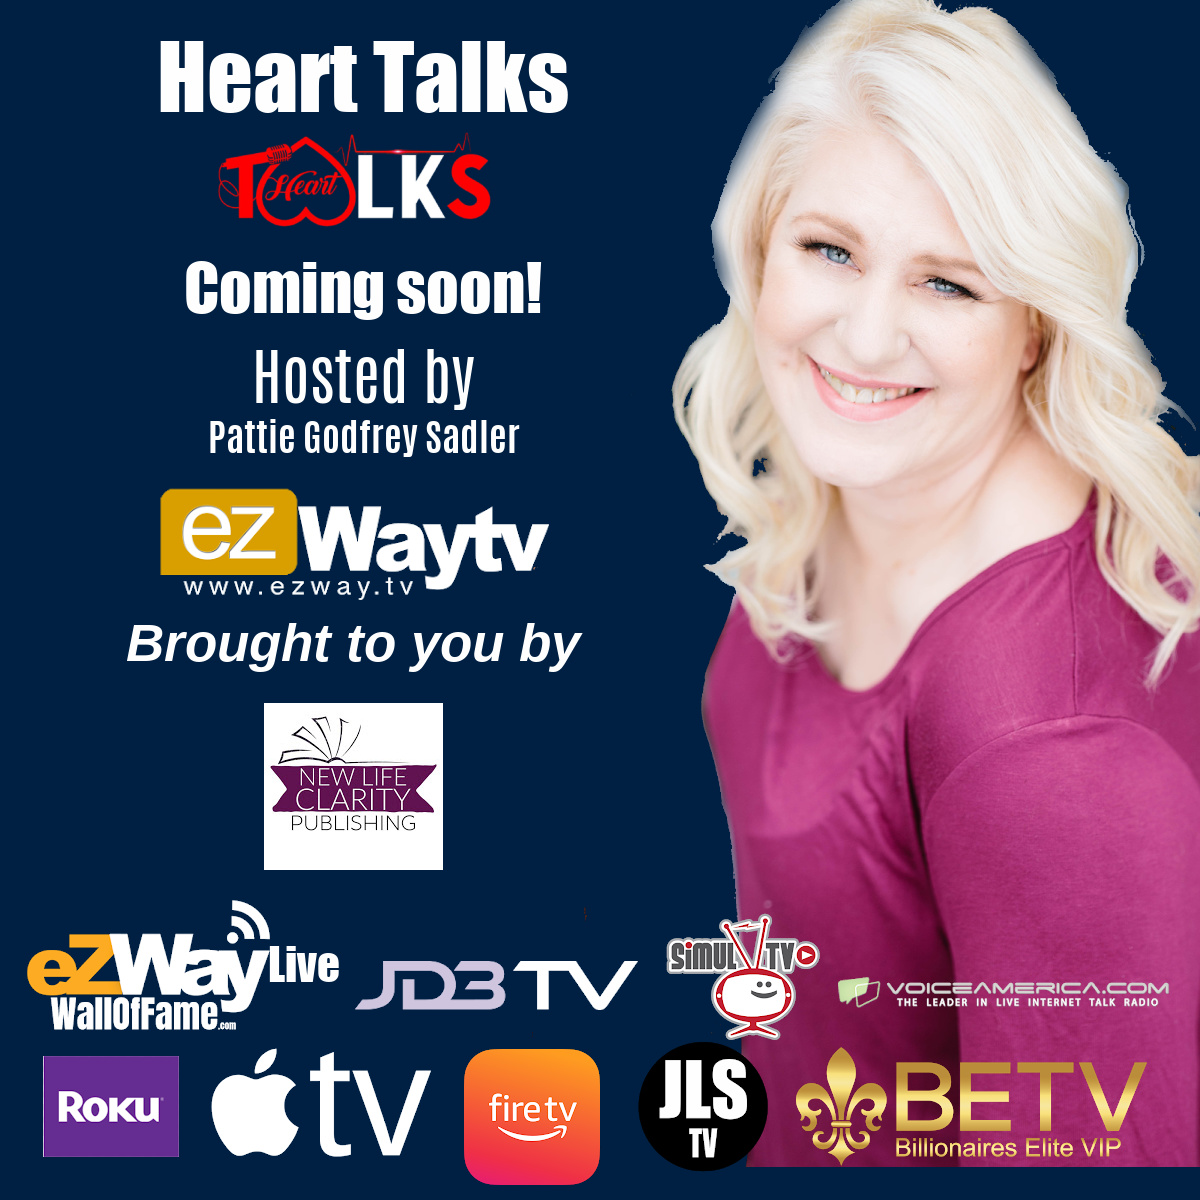 New show Heart Talks with Pattie Sadler coming soon to EZWAYTV